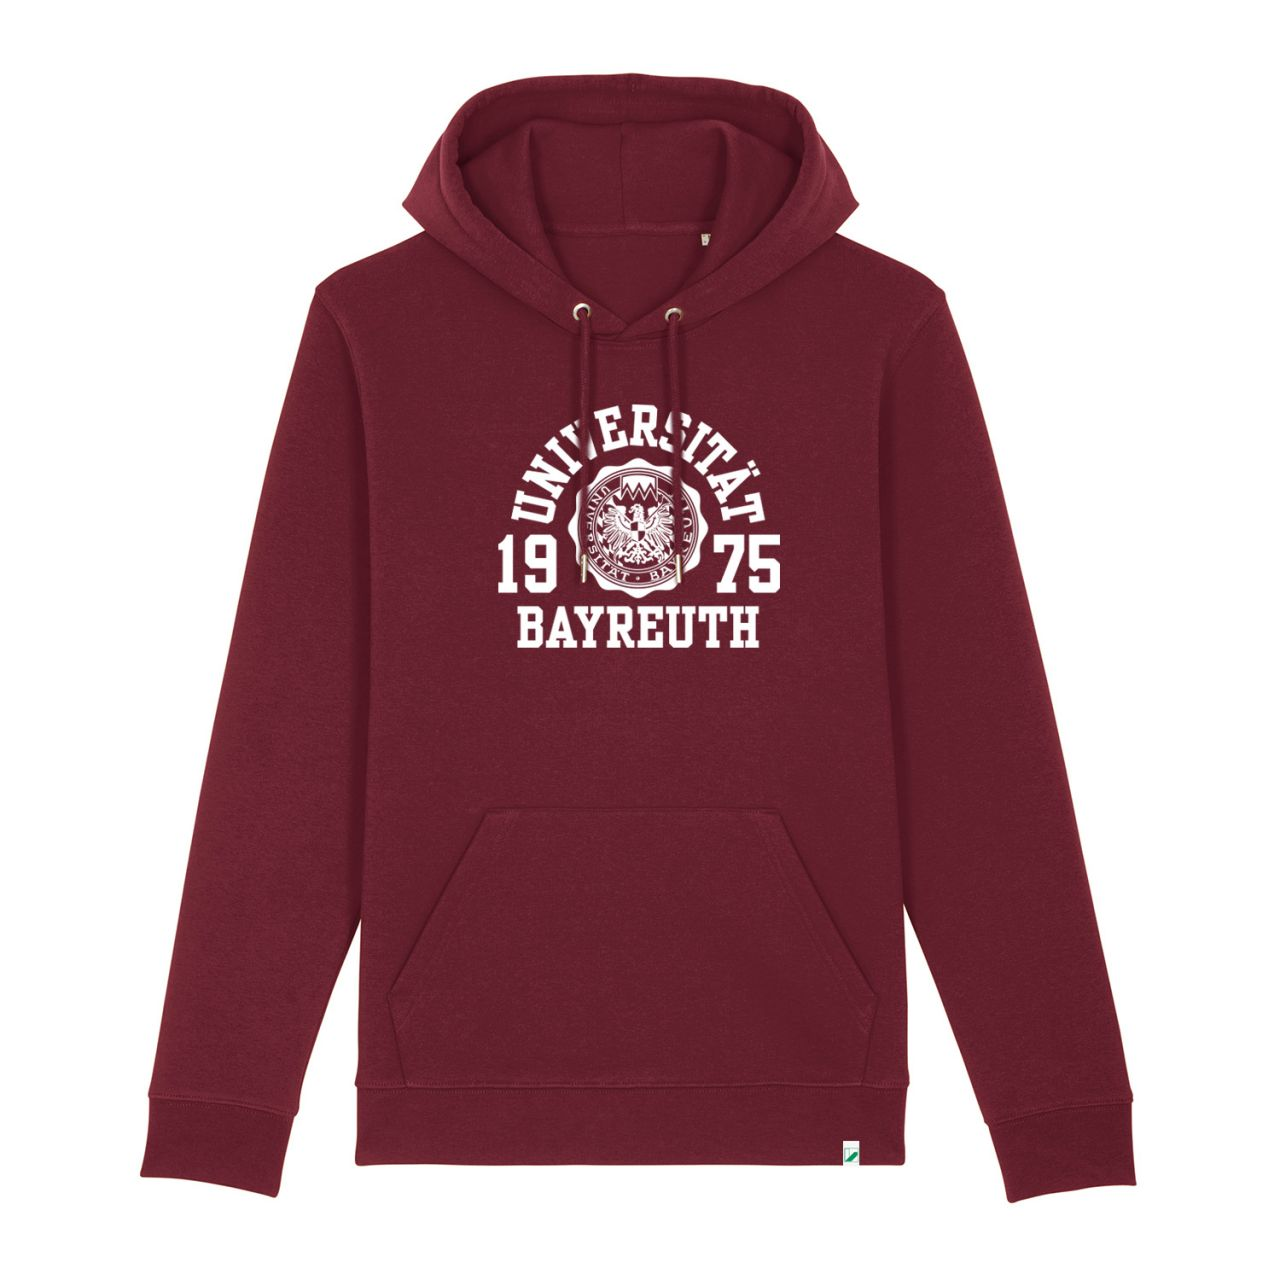 Unisex Organic Hooded Sweatshirt, burgundy, marshall